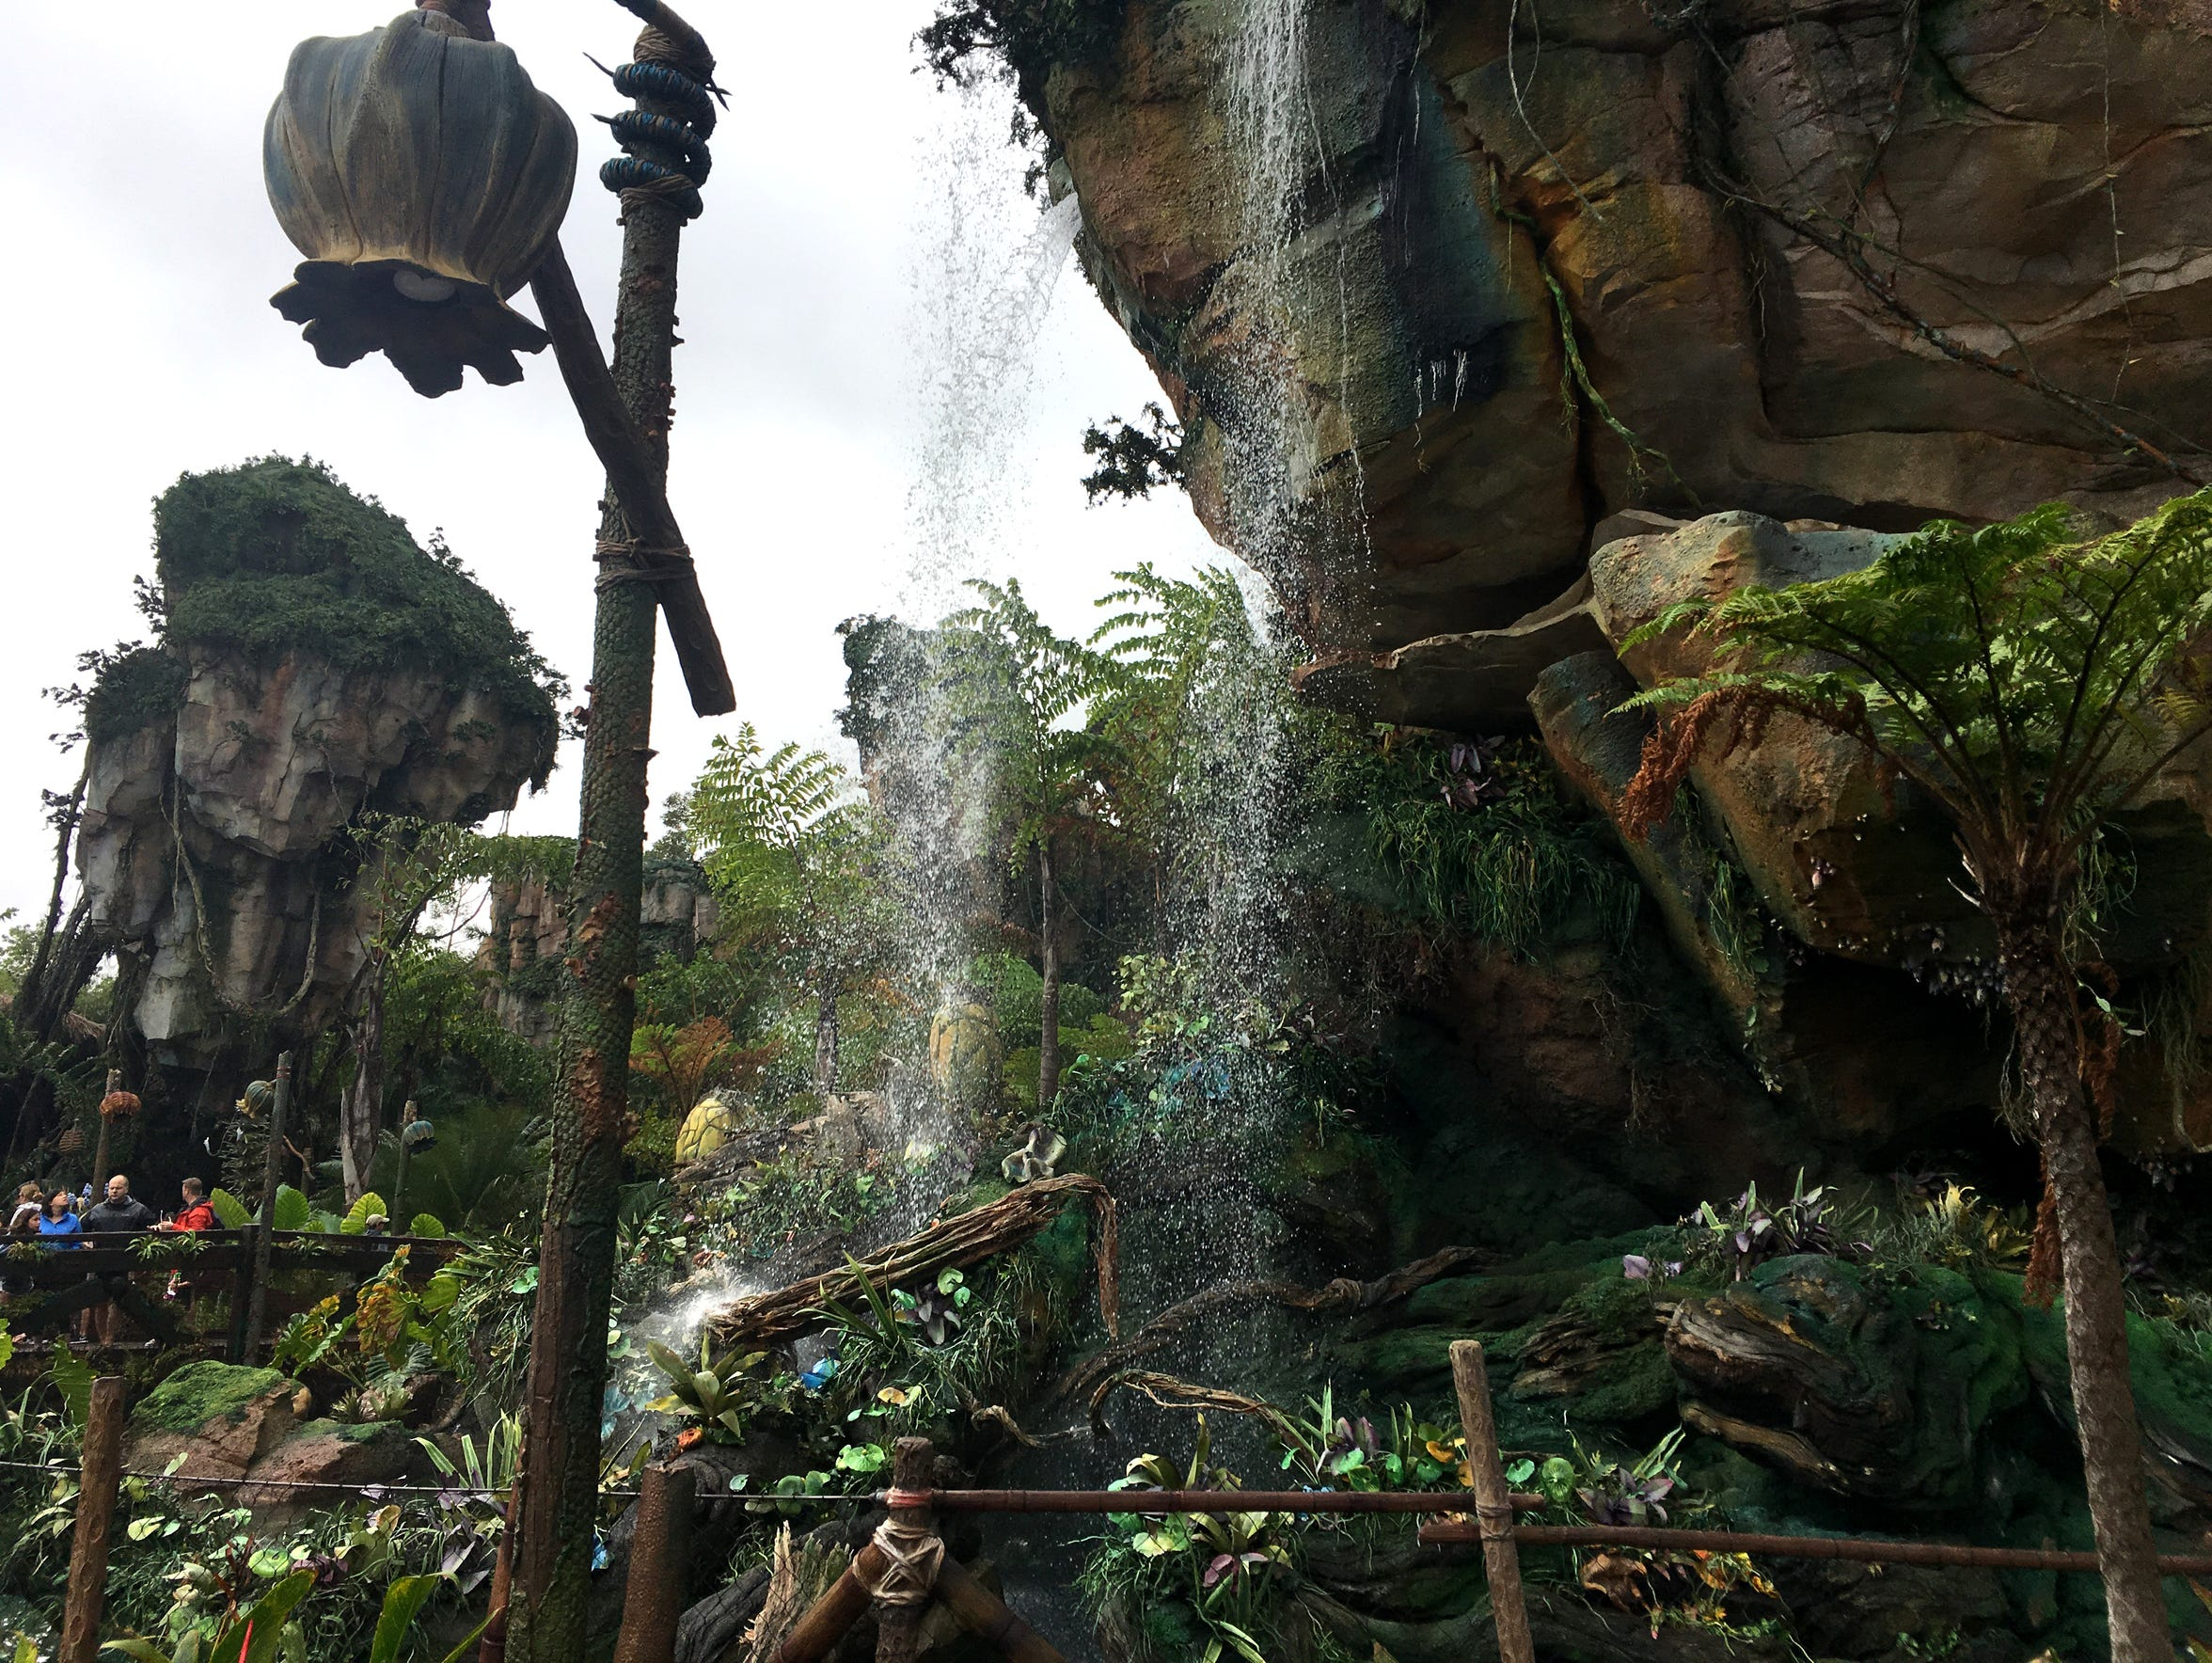 The wait to get into Animal Kingdom's Flight of Passage